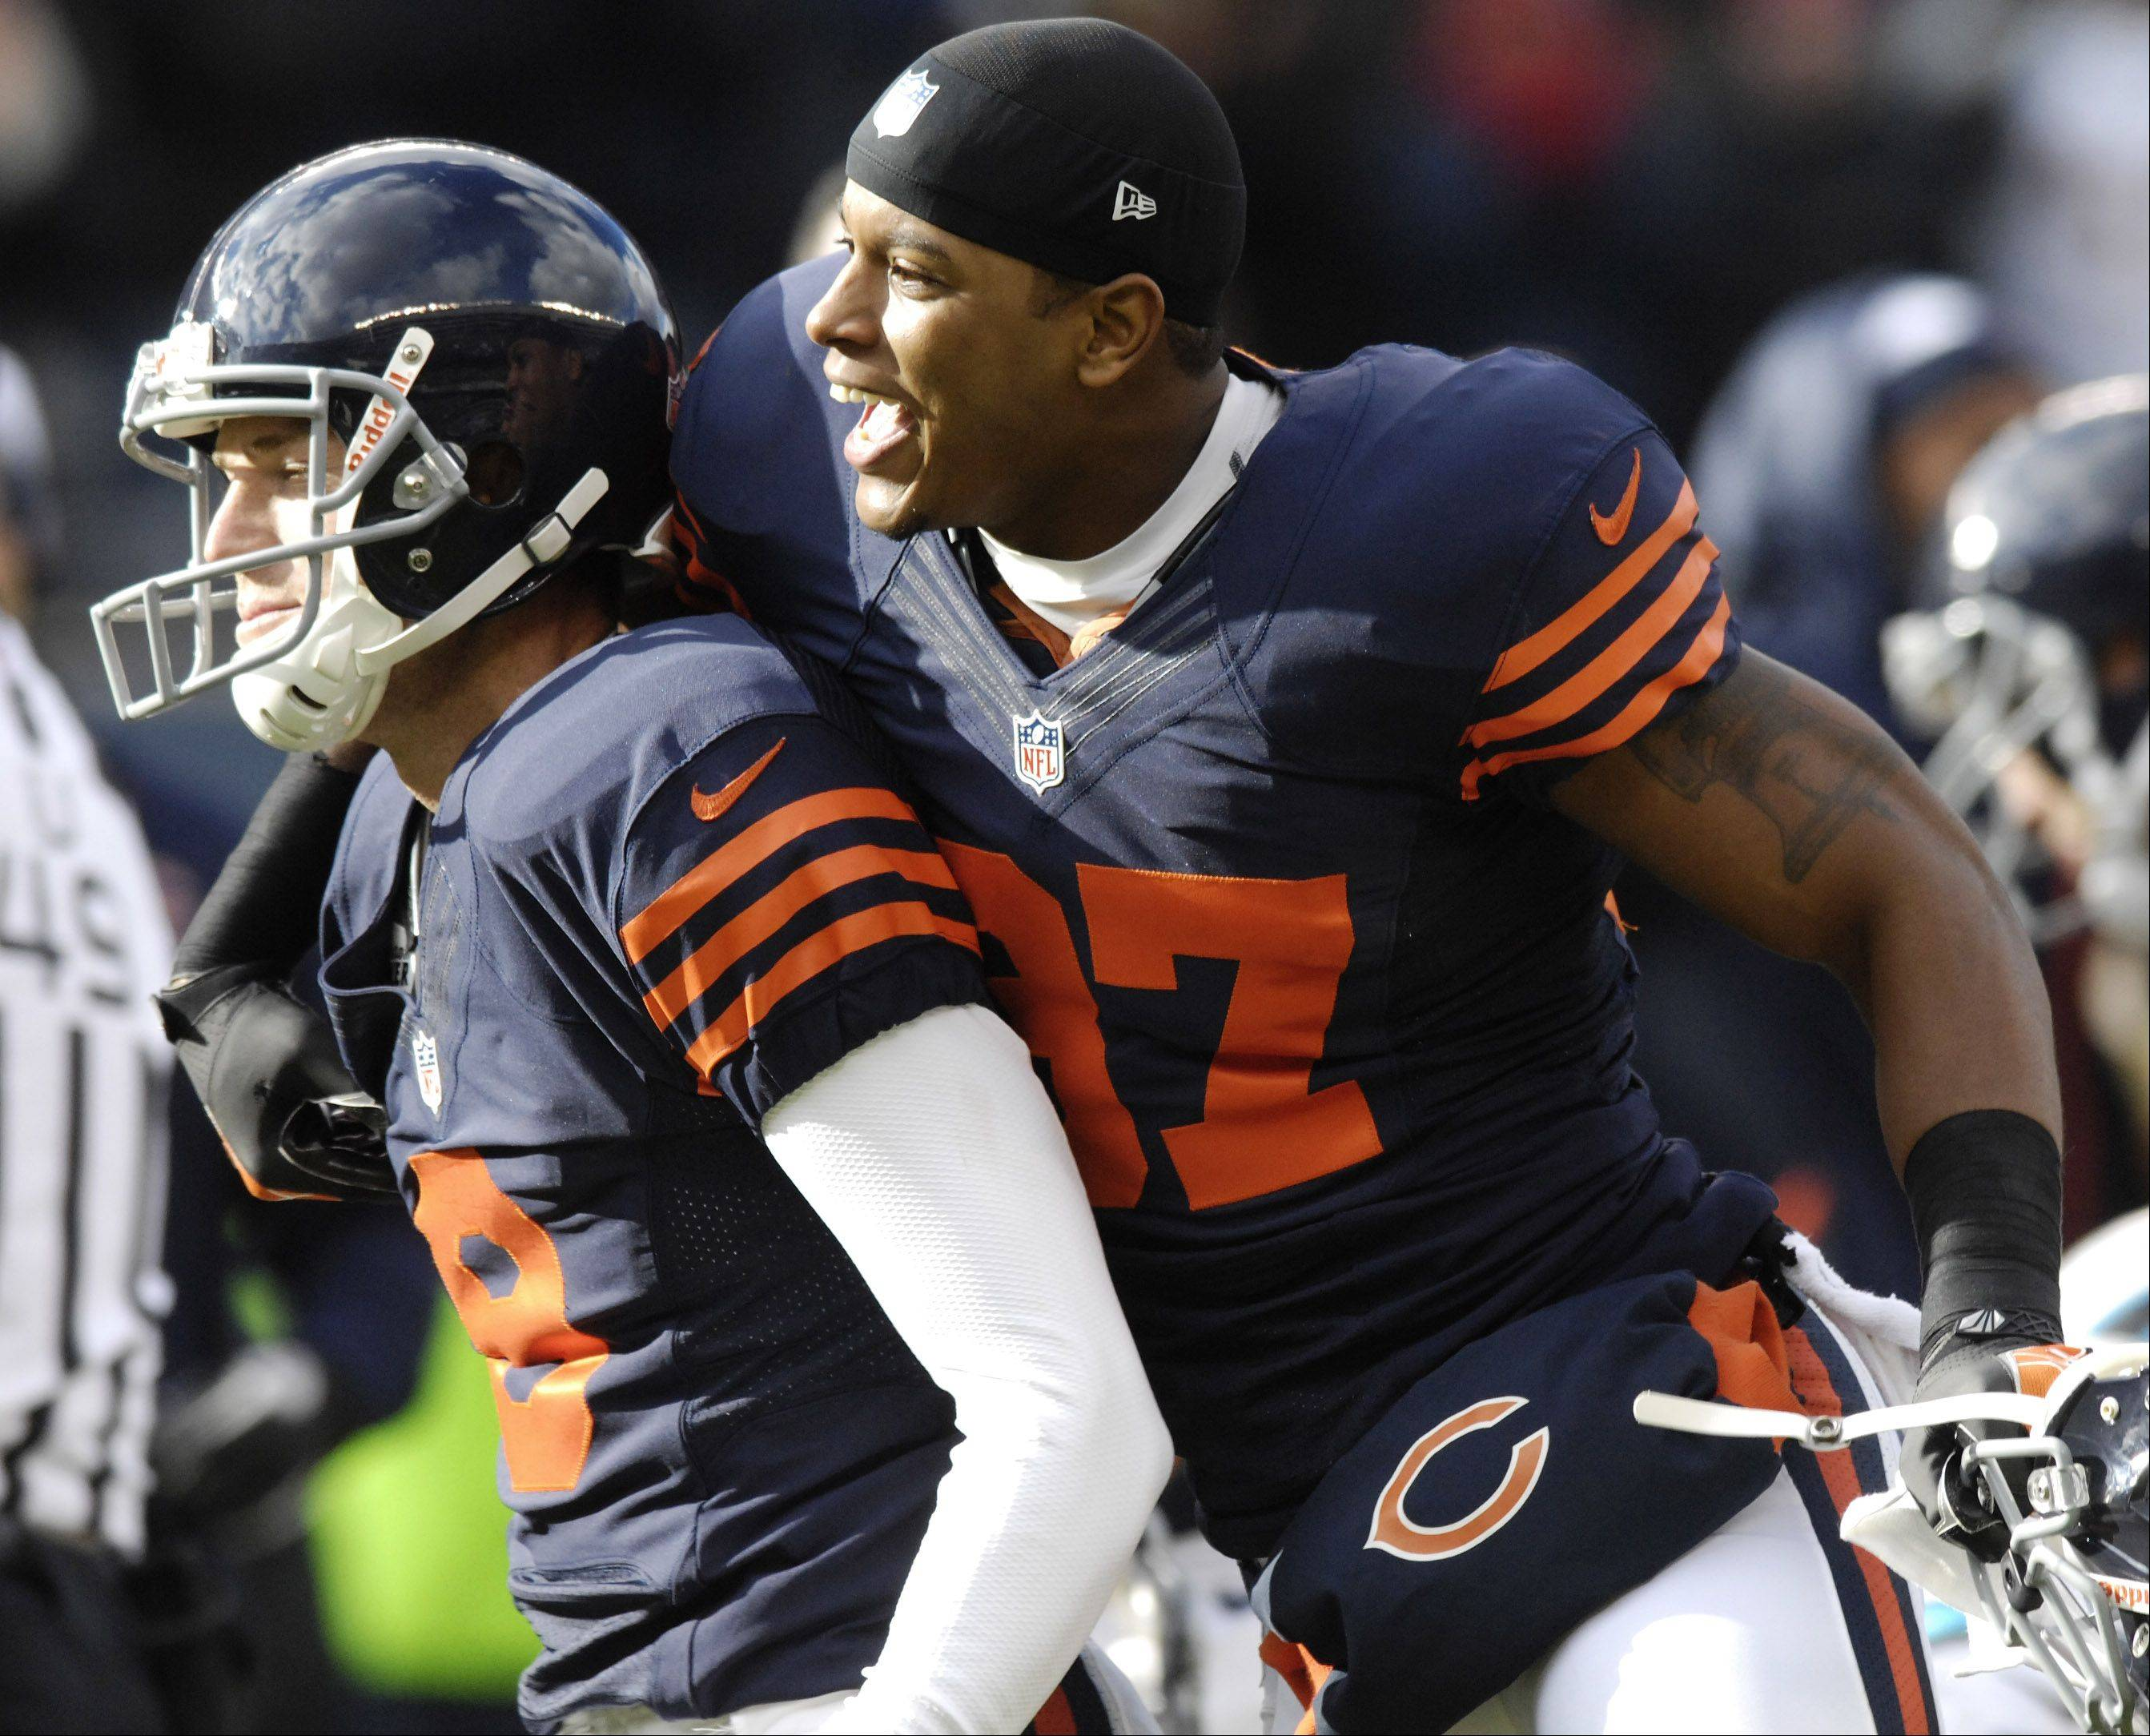 Chicago Bears free safety Anthony Walters, right, celebrates Chicago Bears kicker Robbie Gould�s game-winning field goal during Sunday�s game at Soldier Field.